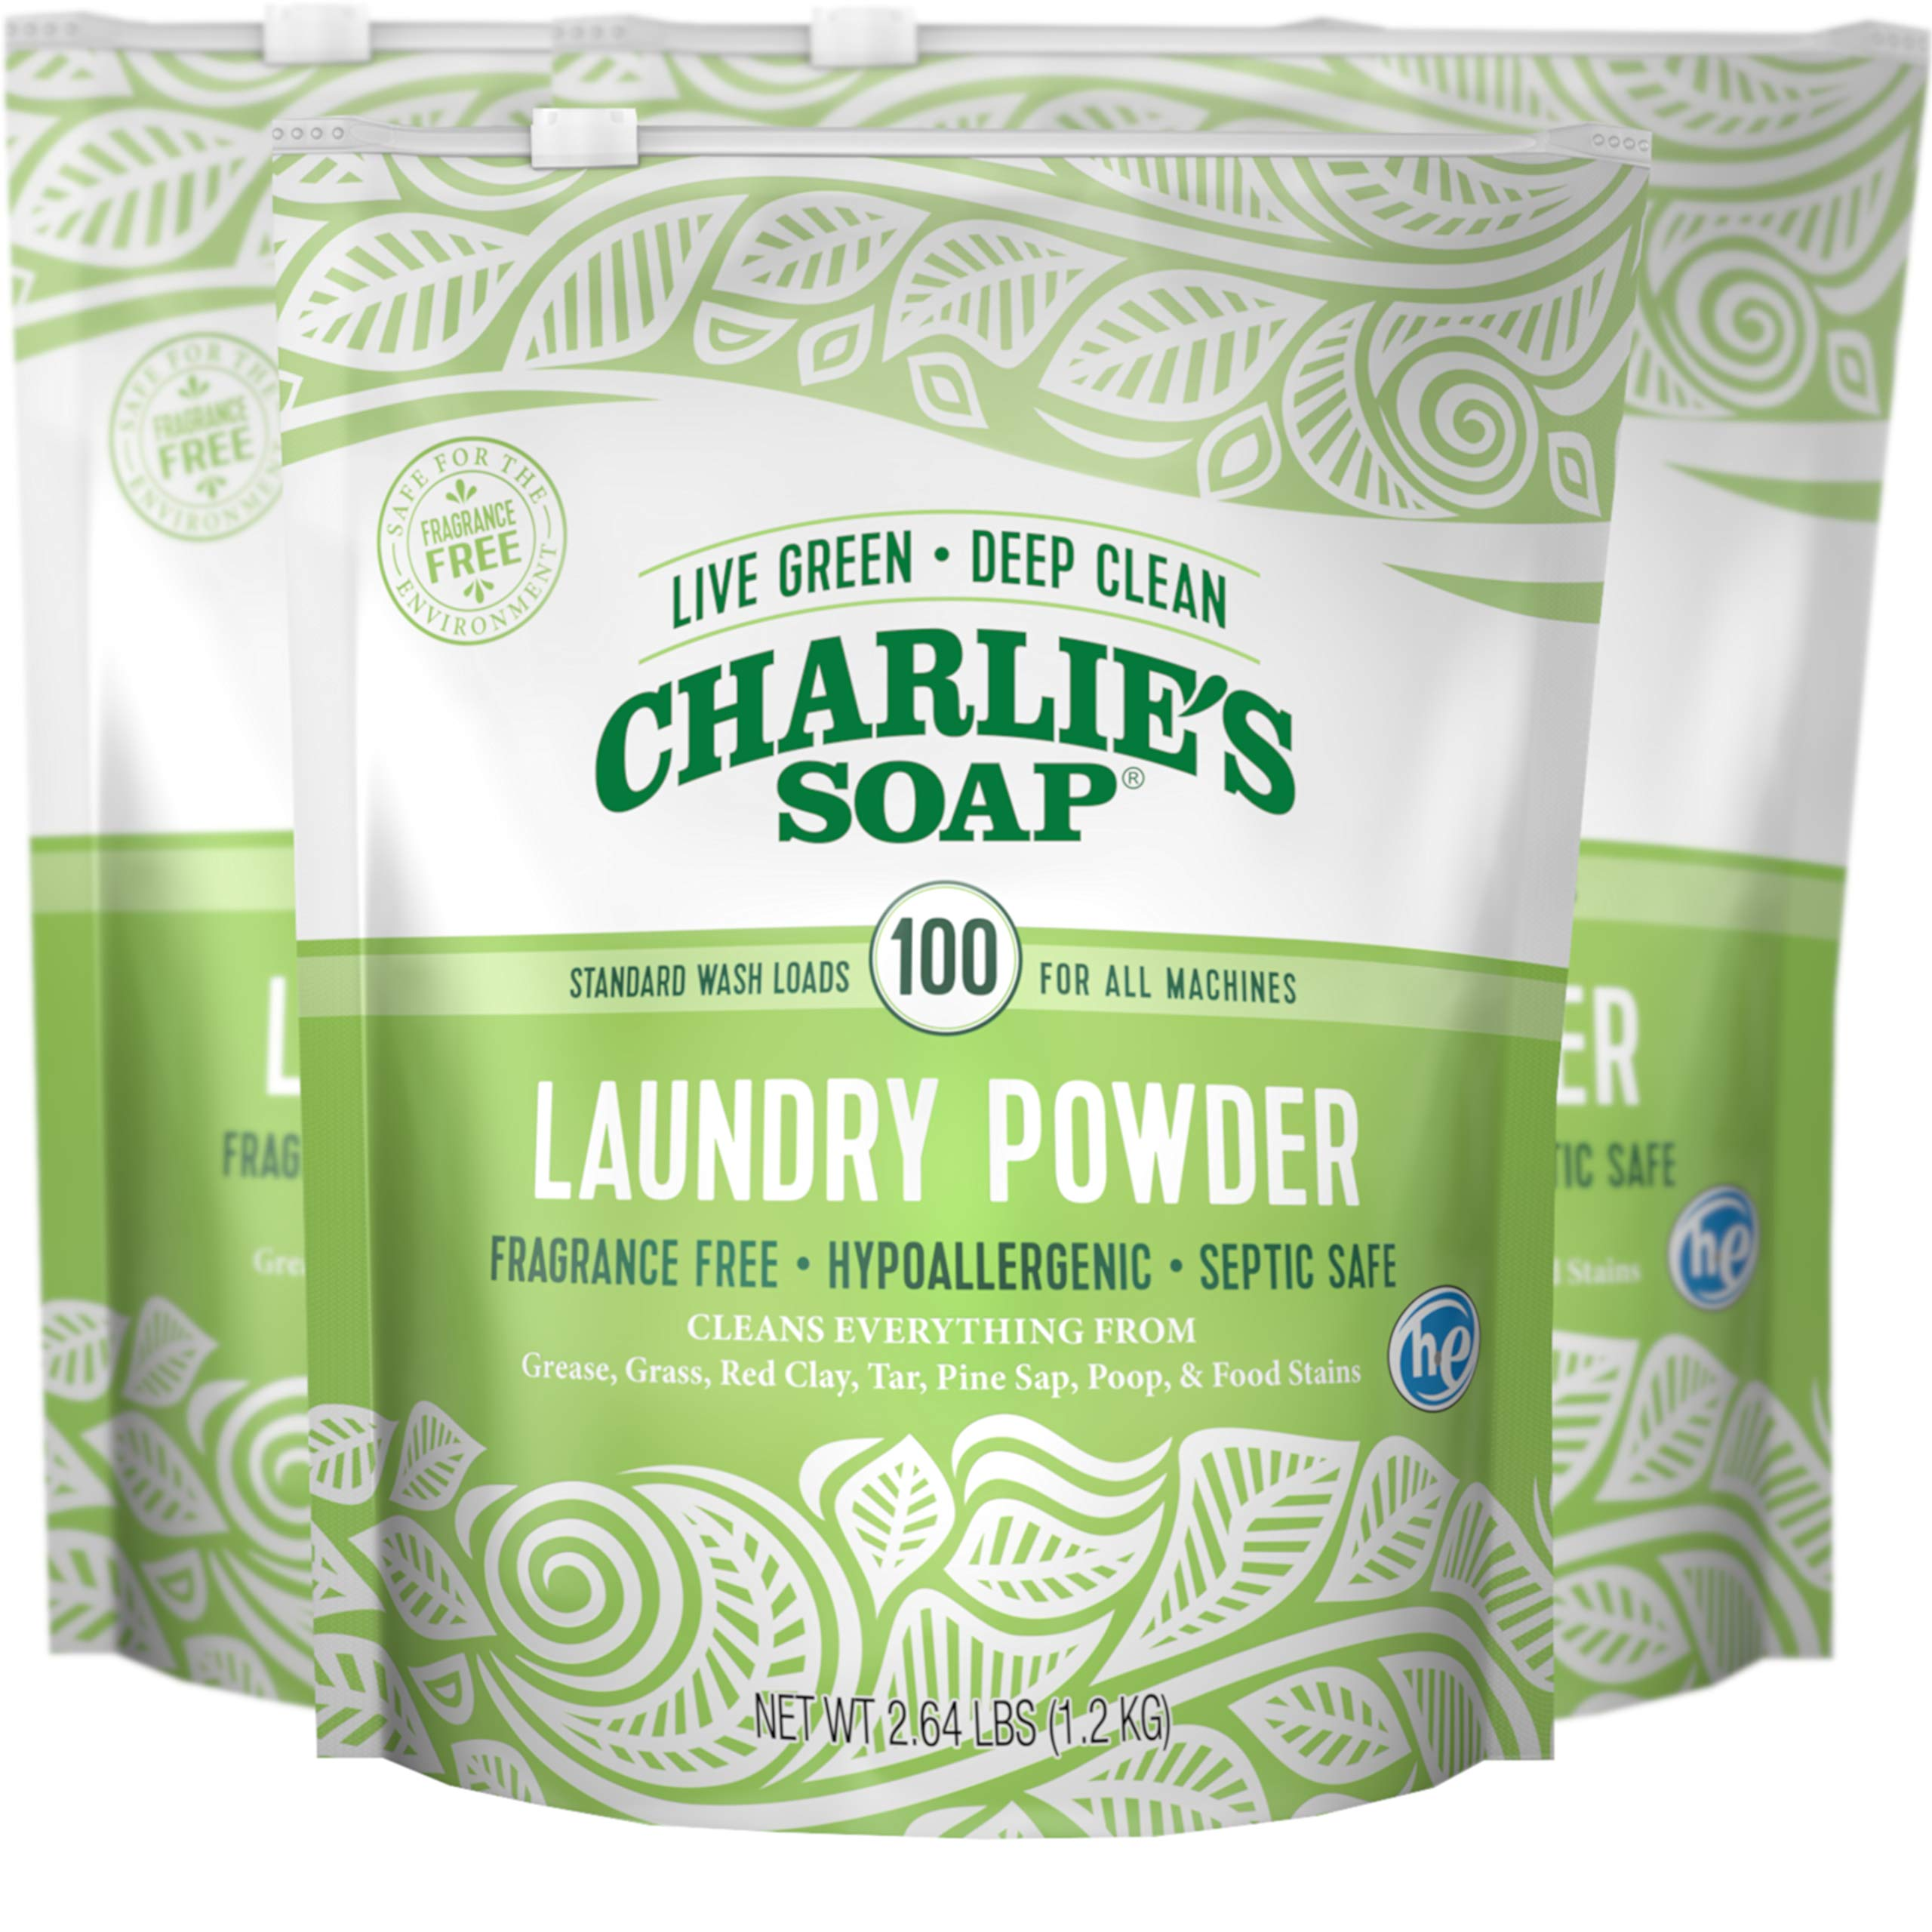 Charlie's Soap Laundry Powder (100 Loads, 3 Pack) Hypoallergenic Deep Cleaning Washing Powder Detergent - Eco-Friendly, Safe, and Effective by Charlie's Soap